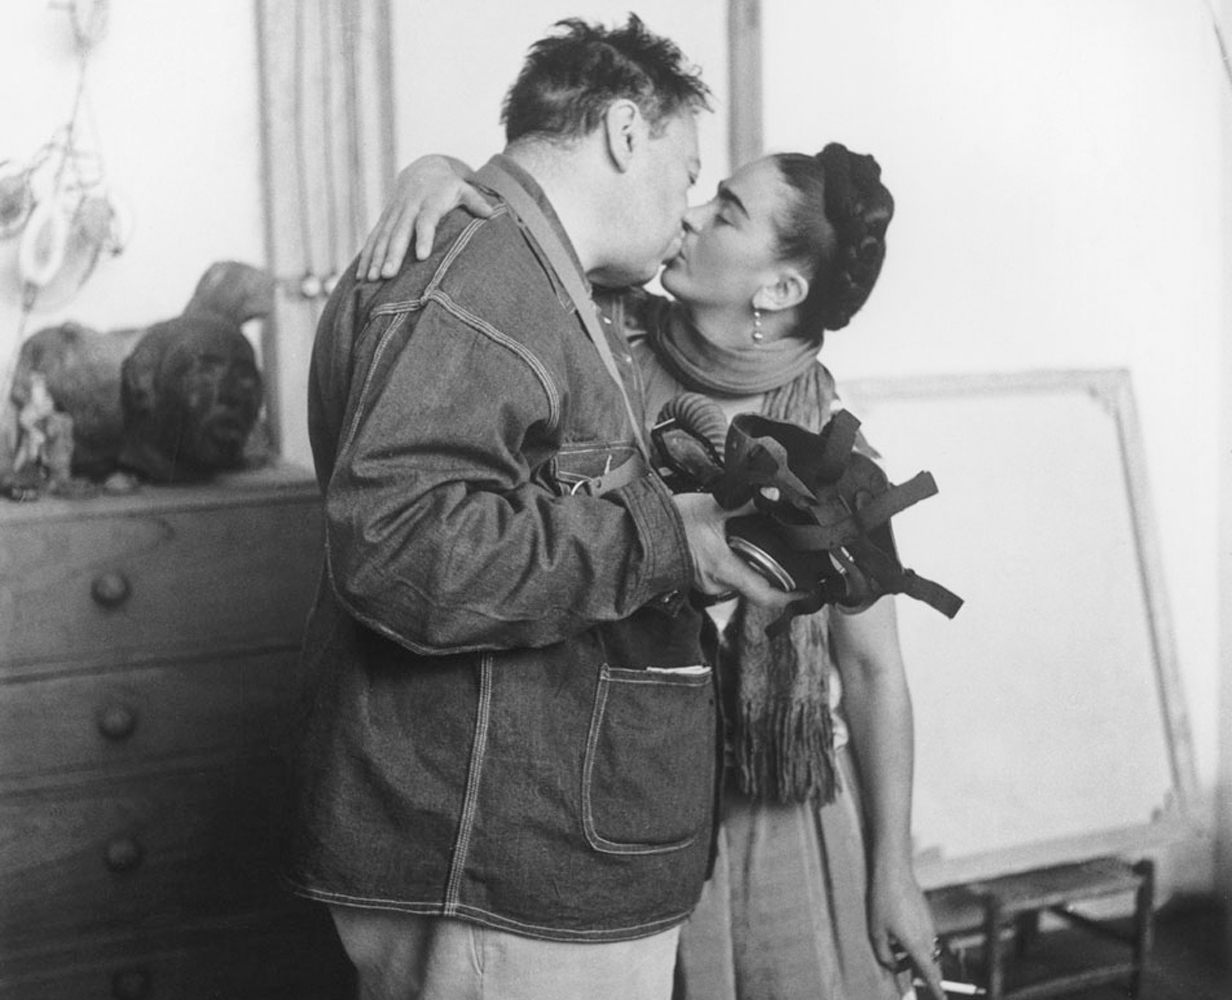 Diego Rivera and Frida Kahlo. Image from theredlist.com